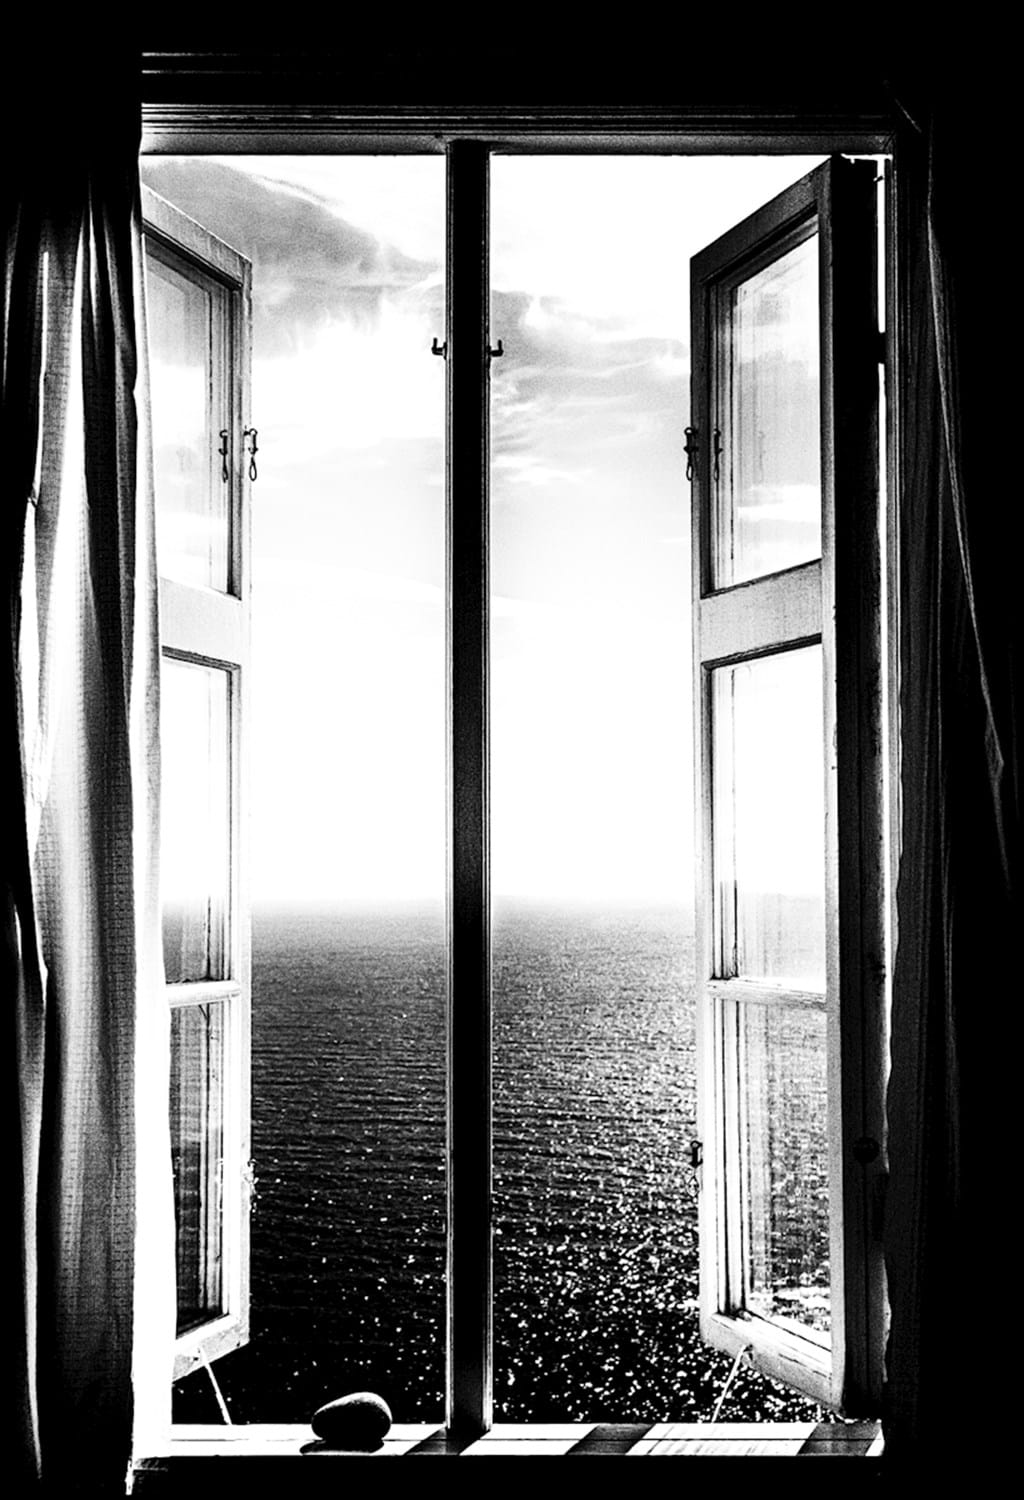 Poster: The view from the lighthoouse - This black and white photograph of an open window overlooking the ocean is ...